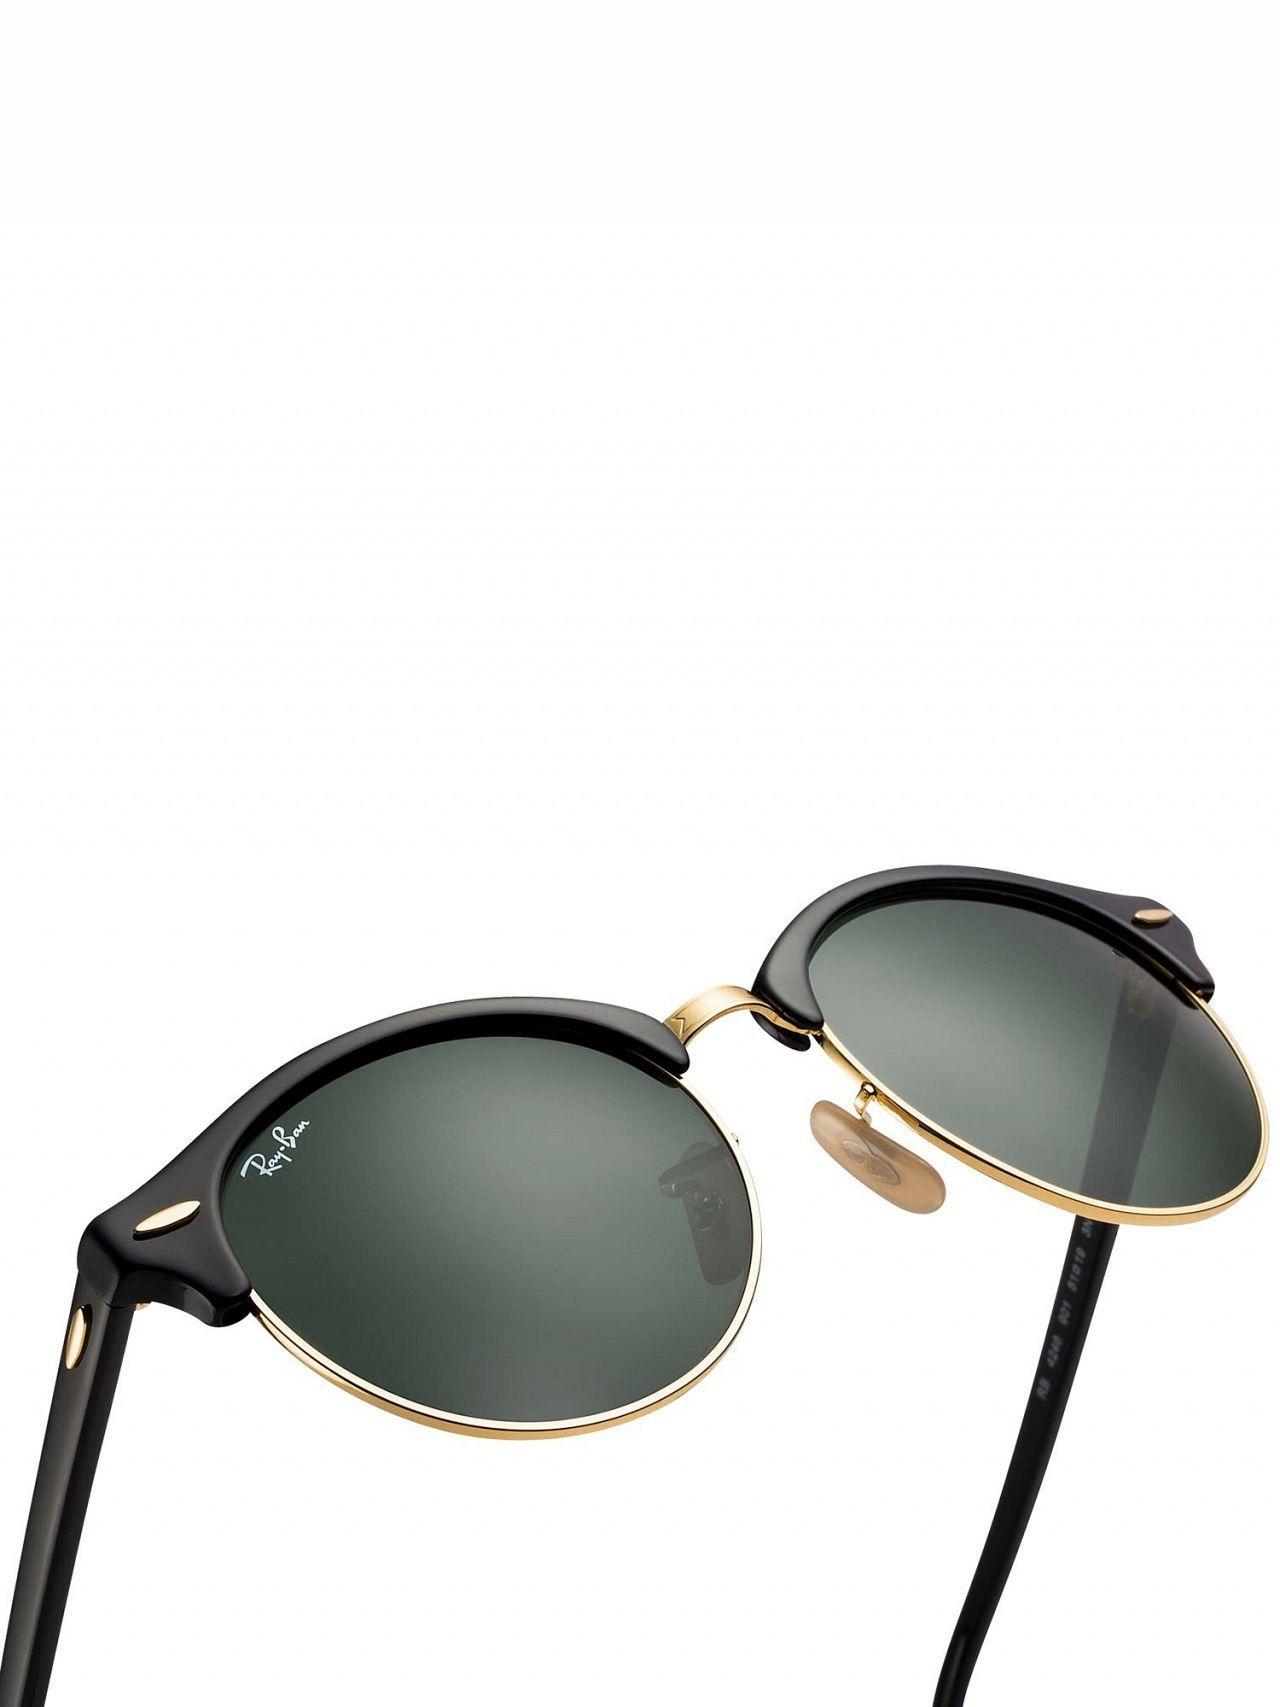 d0f8a4228cd480 Ray-Ban Black Rb4246 Clubround Sunglasses in Black for Men - Lyst